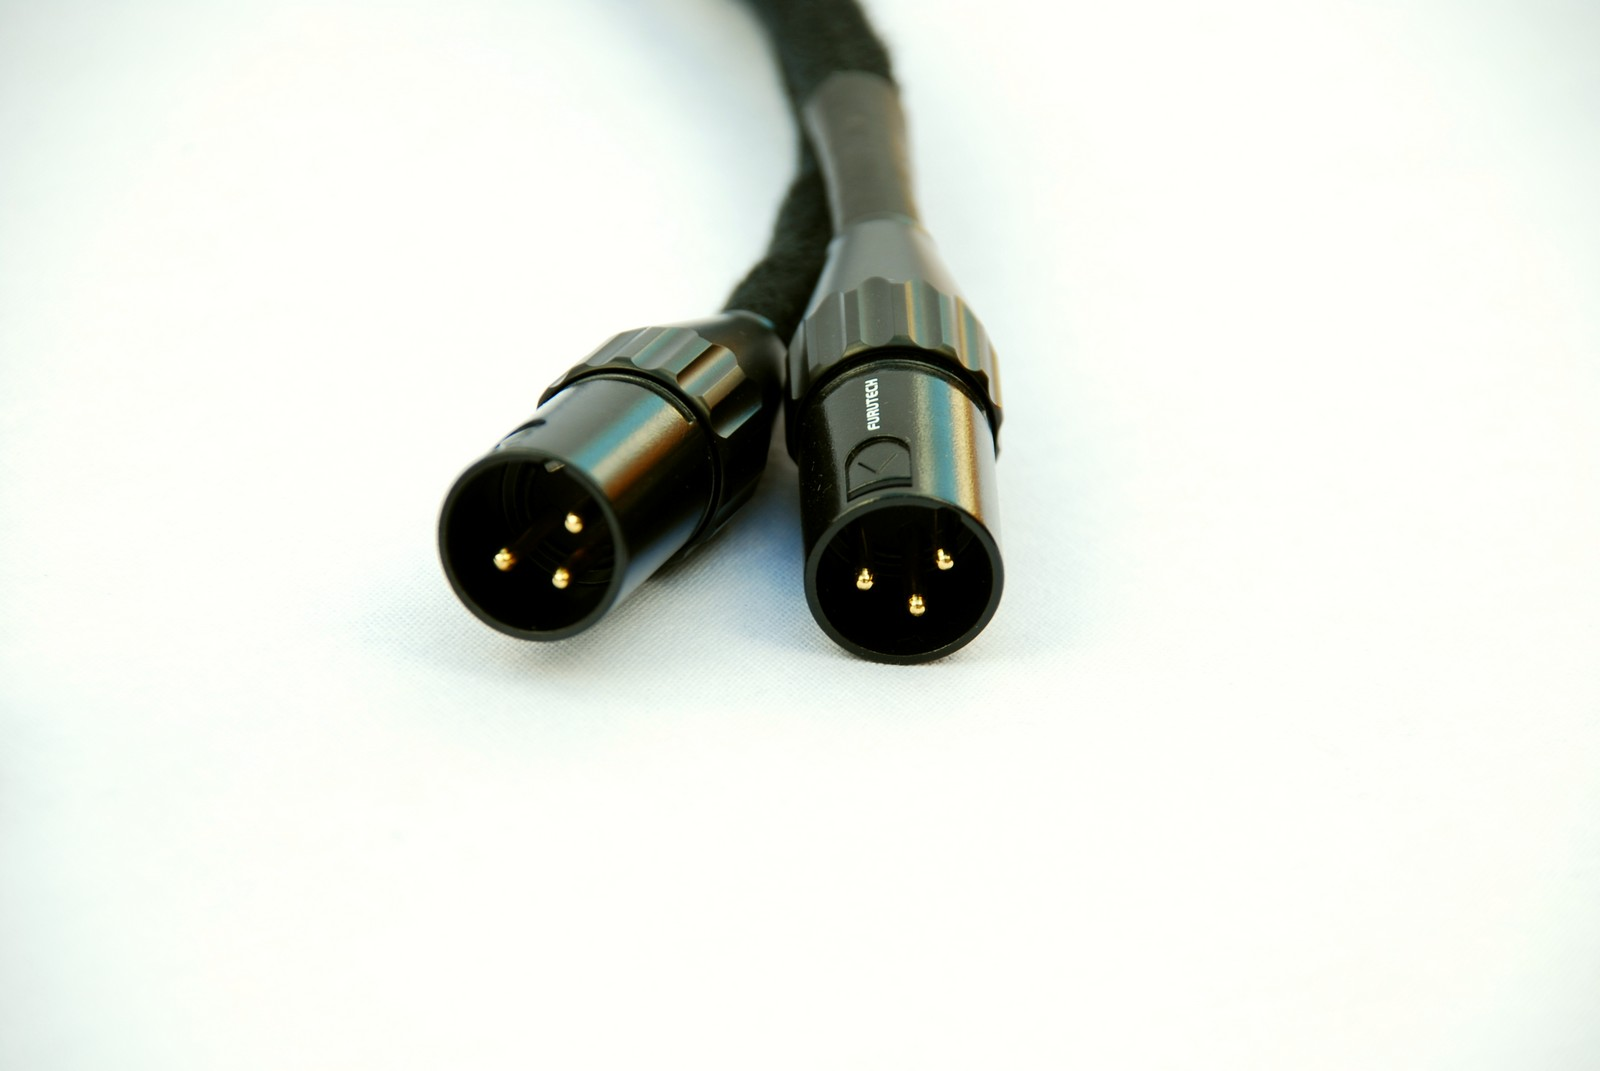 XLR Silver Audio Cables